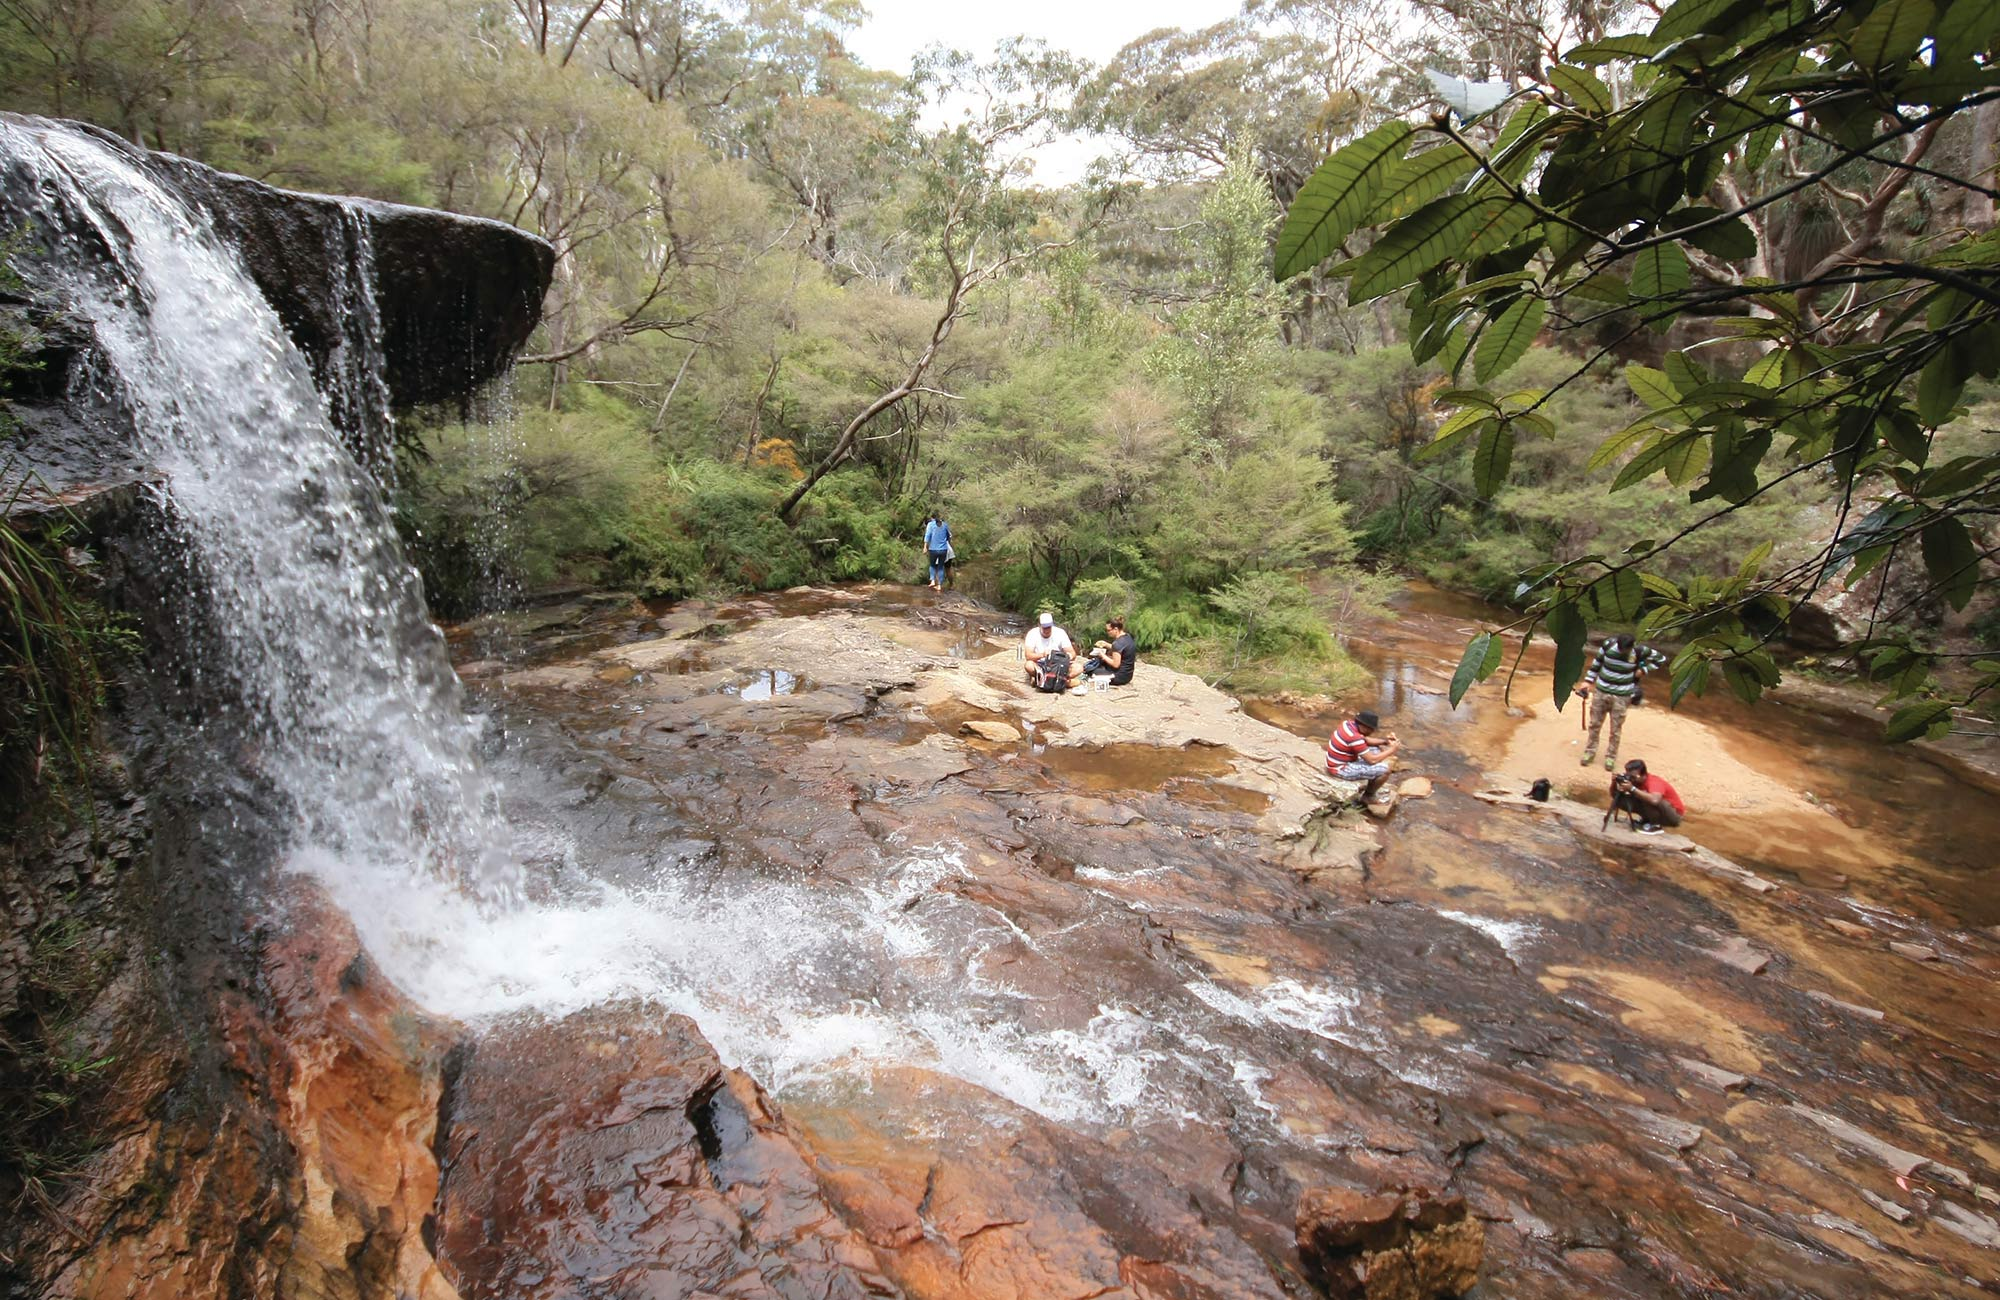 Vistors picnic below Weeping Rock waterfall, Wentworth Falls, Blue Mountains National Park. Photo: Elinor Sheargold/OEH.